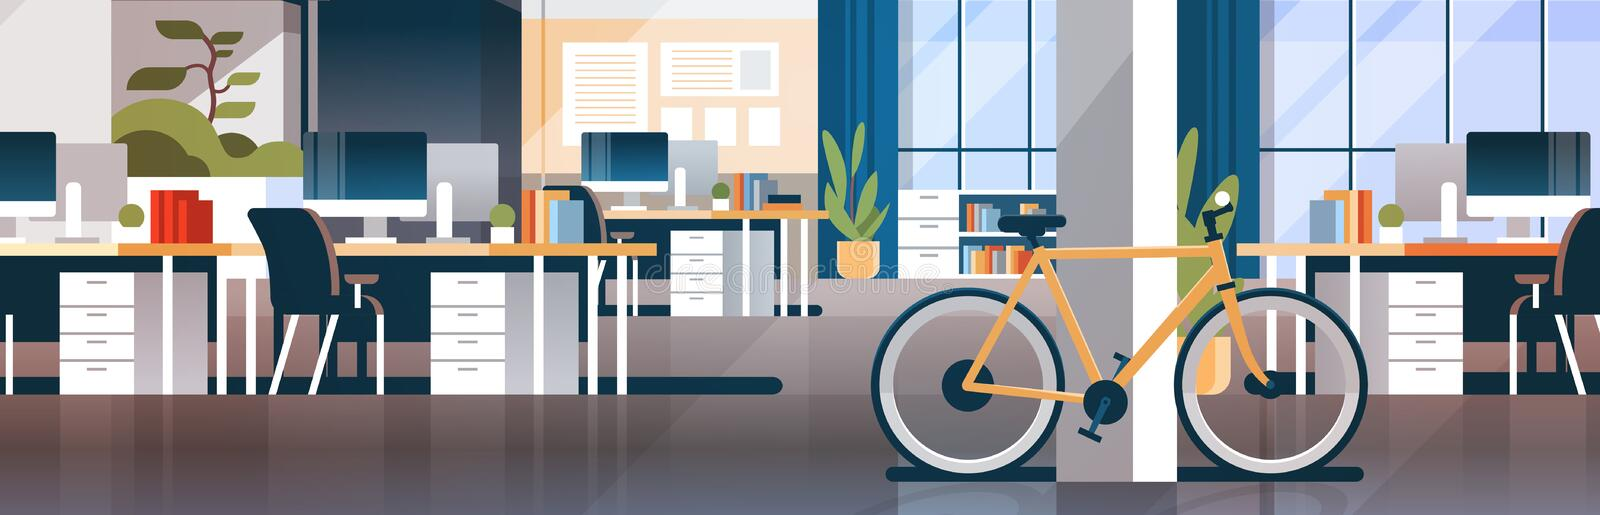 Creative office coworking center room interior modern workplace desk bicycle ecological transport horizontal banner flat vector illustration